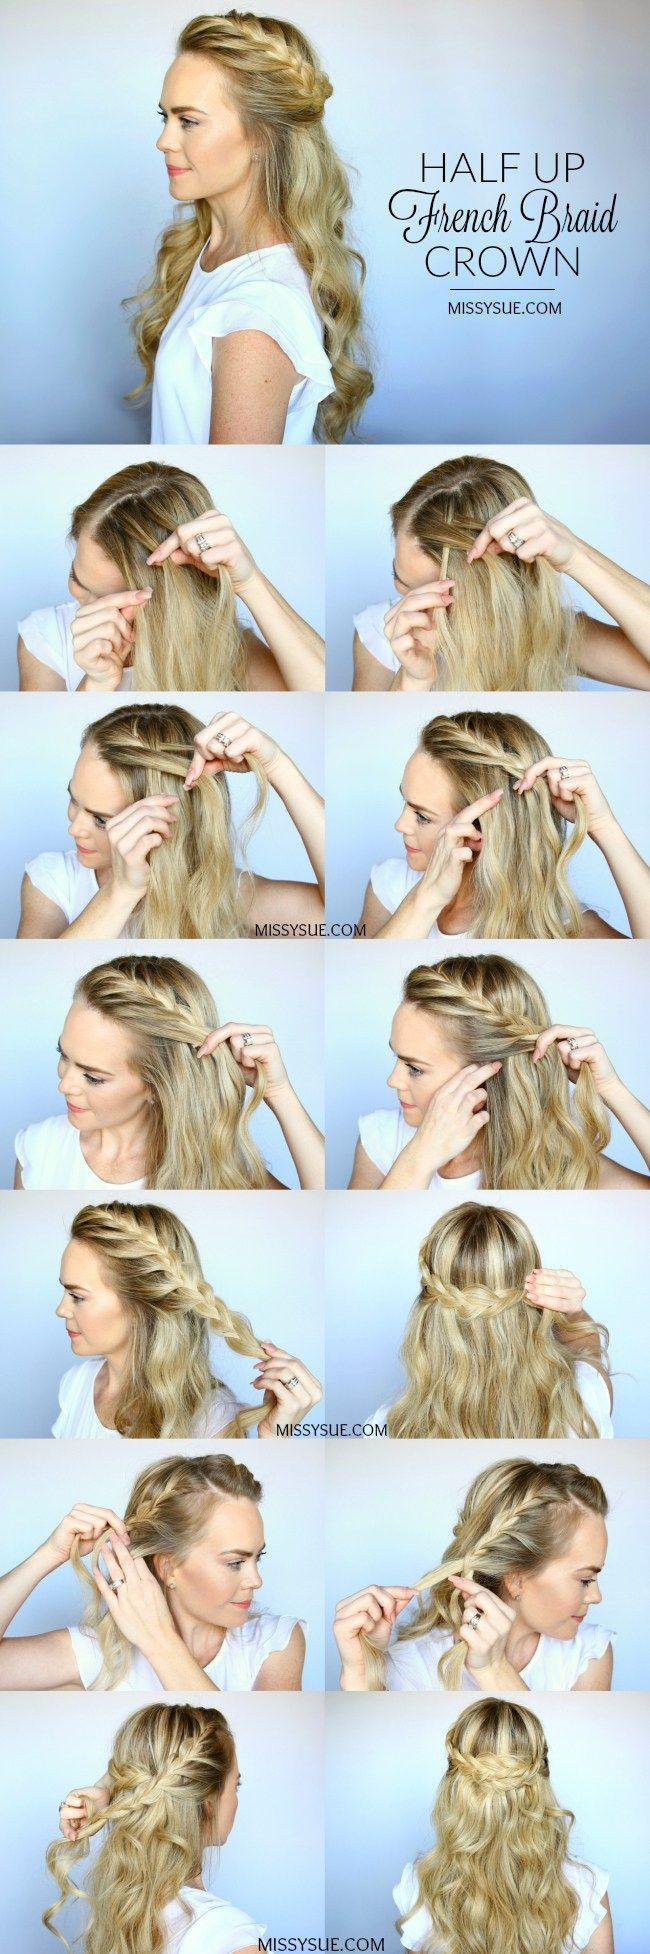 Wedding - Half Up French Braid Crown